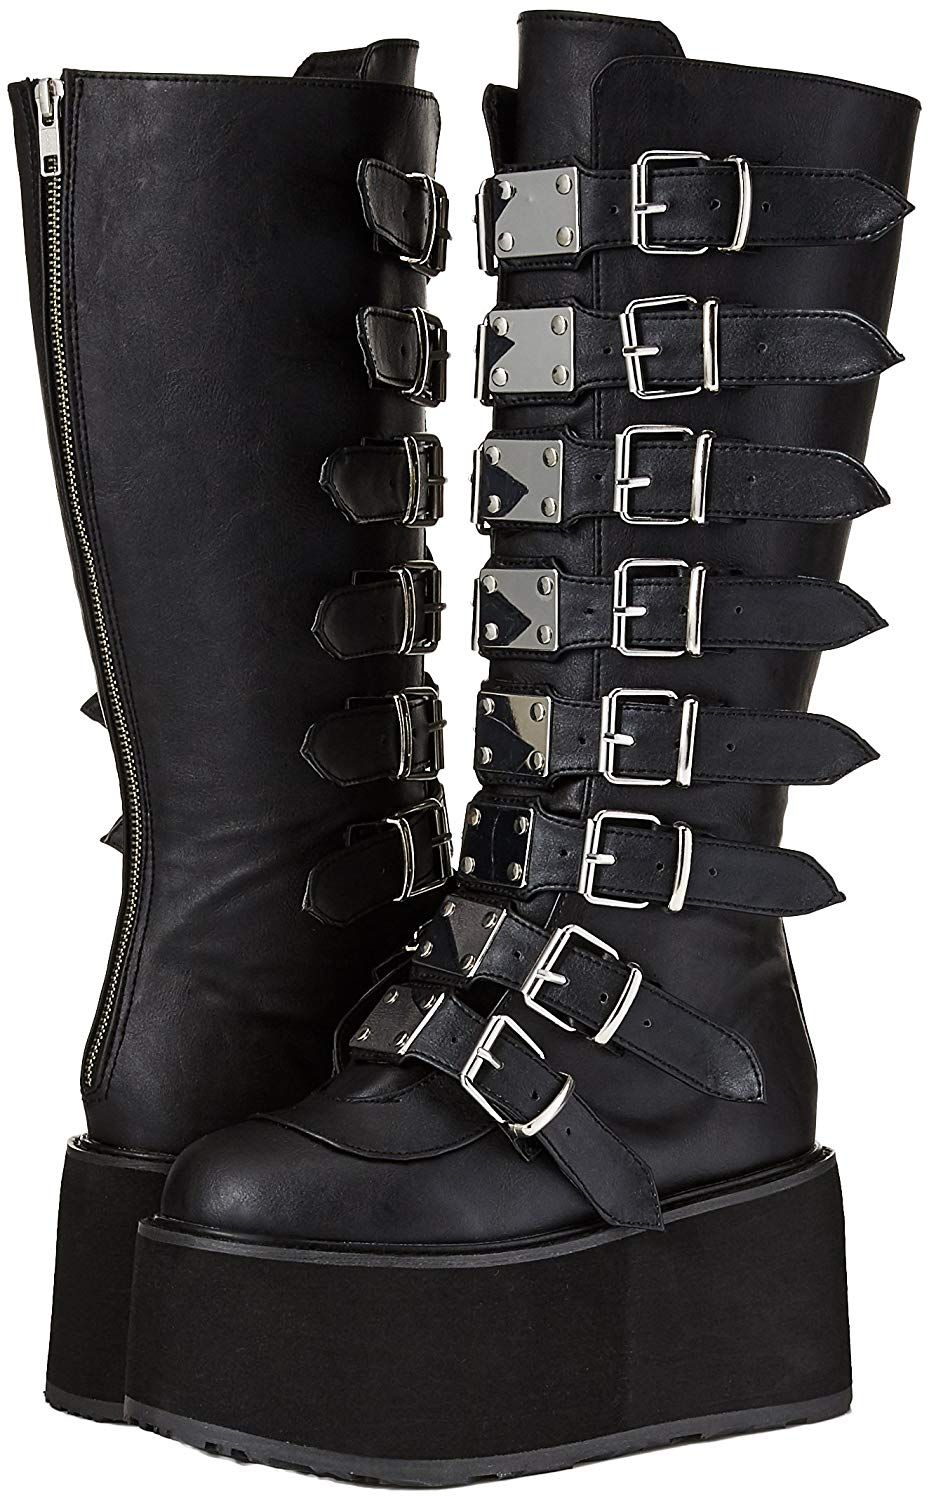 Demonia womens damned318 knee high boot you can find